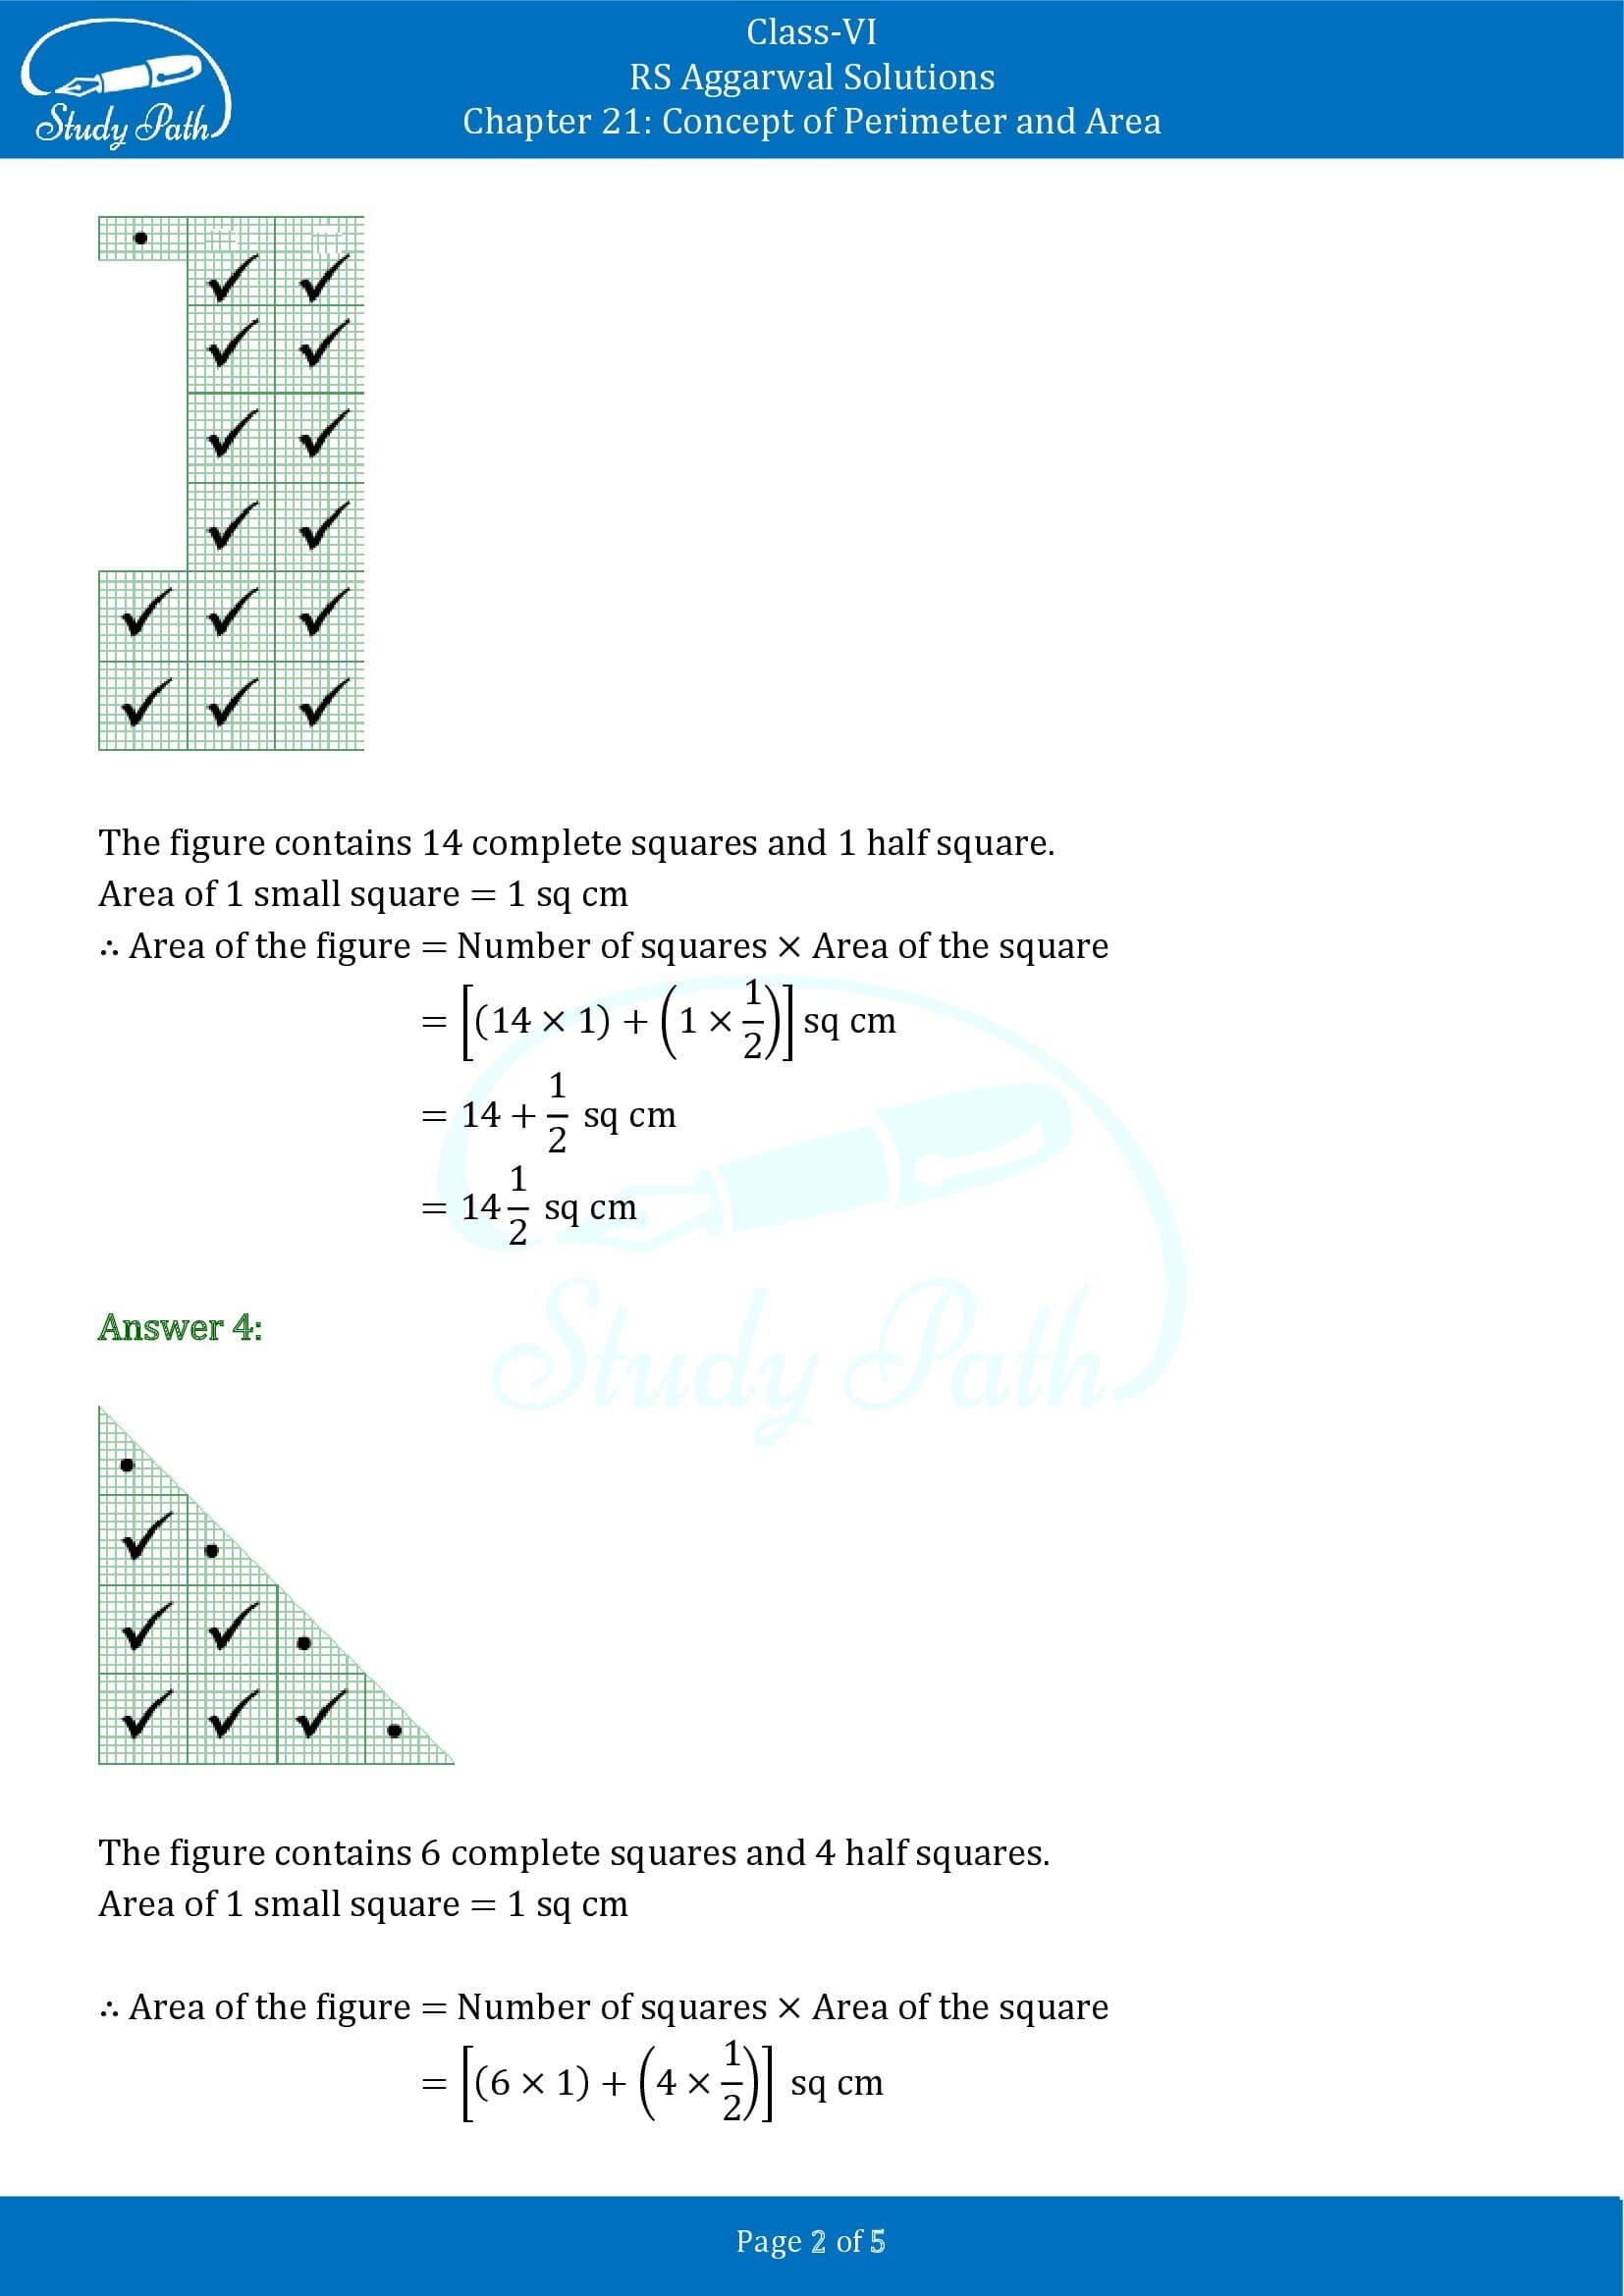 RS Aggarwal Solutions Class 6 Chapter 21 Concept of Perimeter and Area Exercise 21C 00002